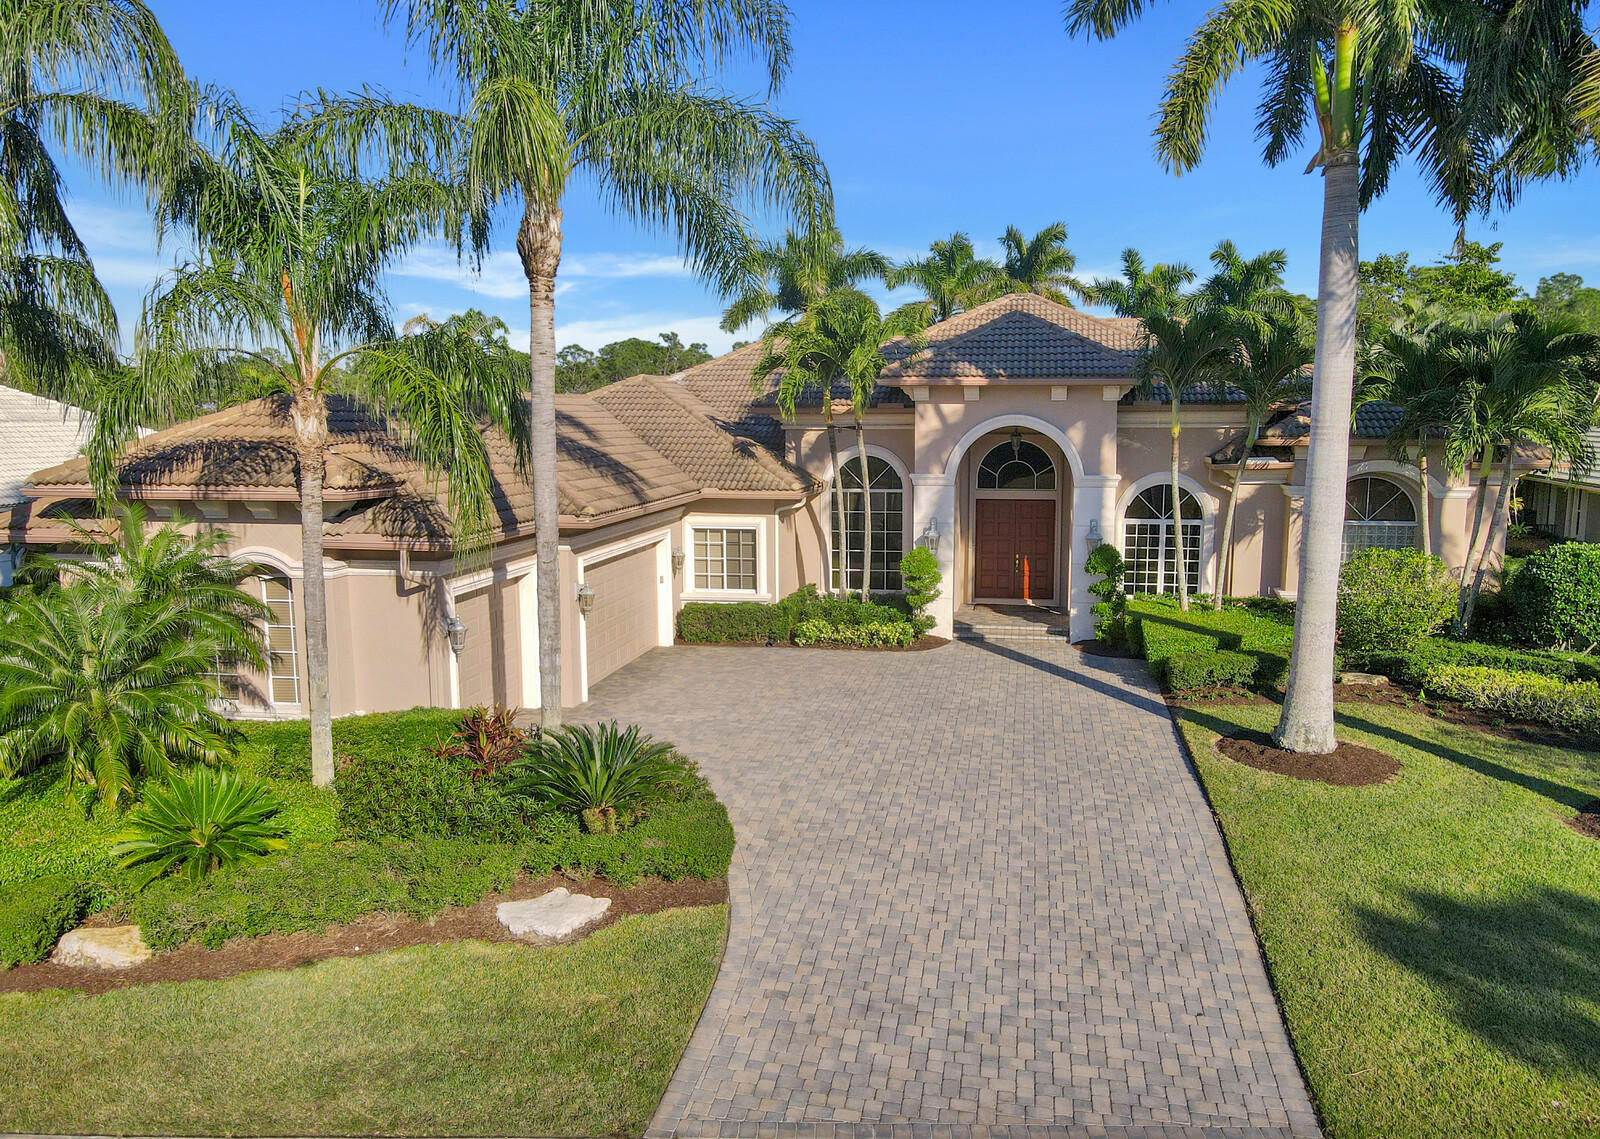 Home for sale in Ibis - The Preserve West Palm Beach Florida